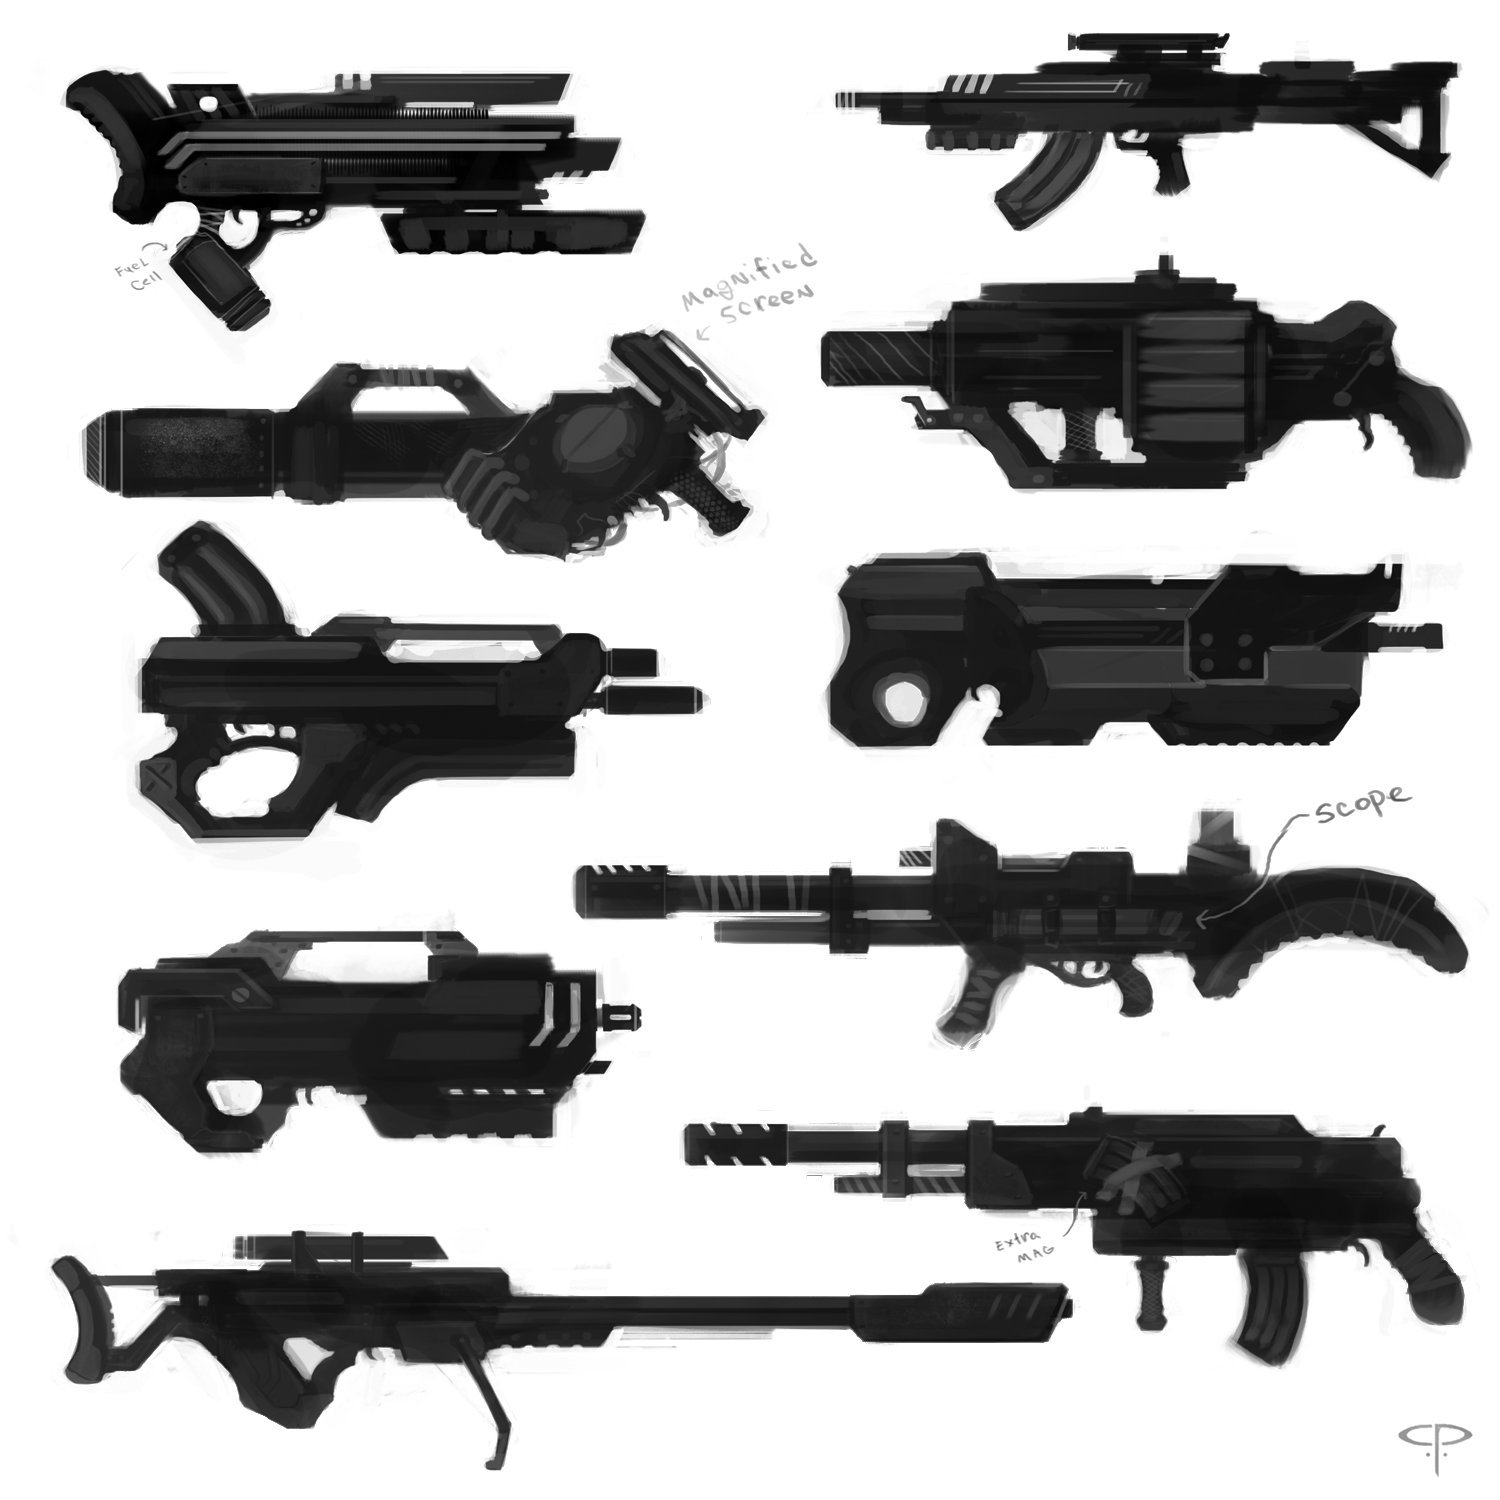 Concept Weapons Technology New Concept Weapons